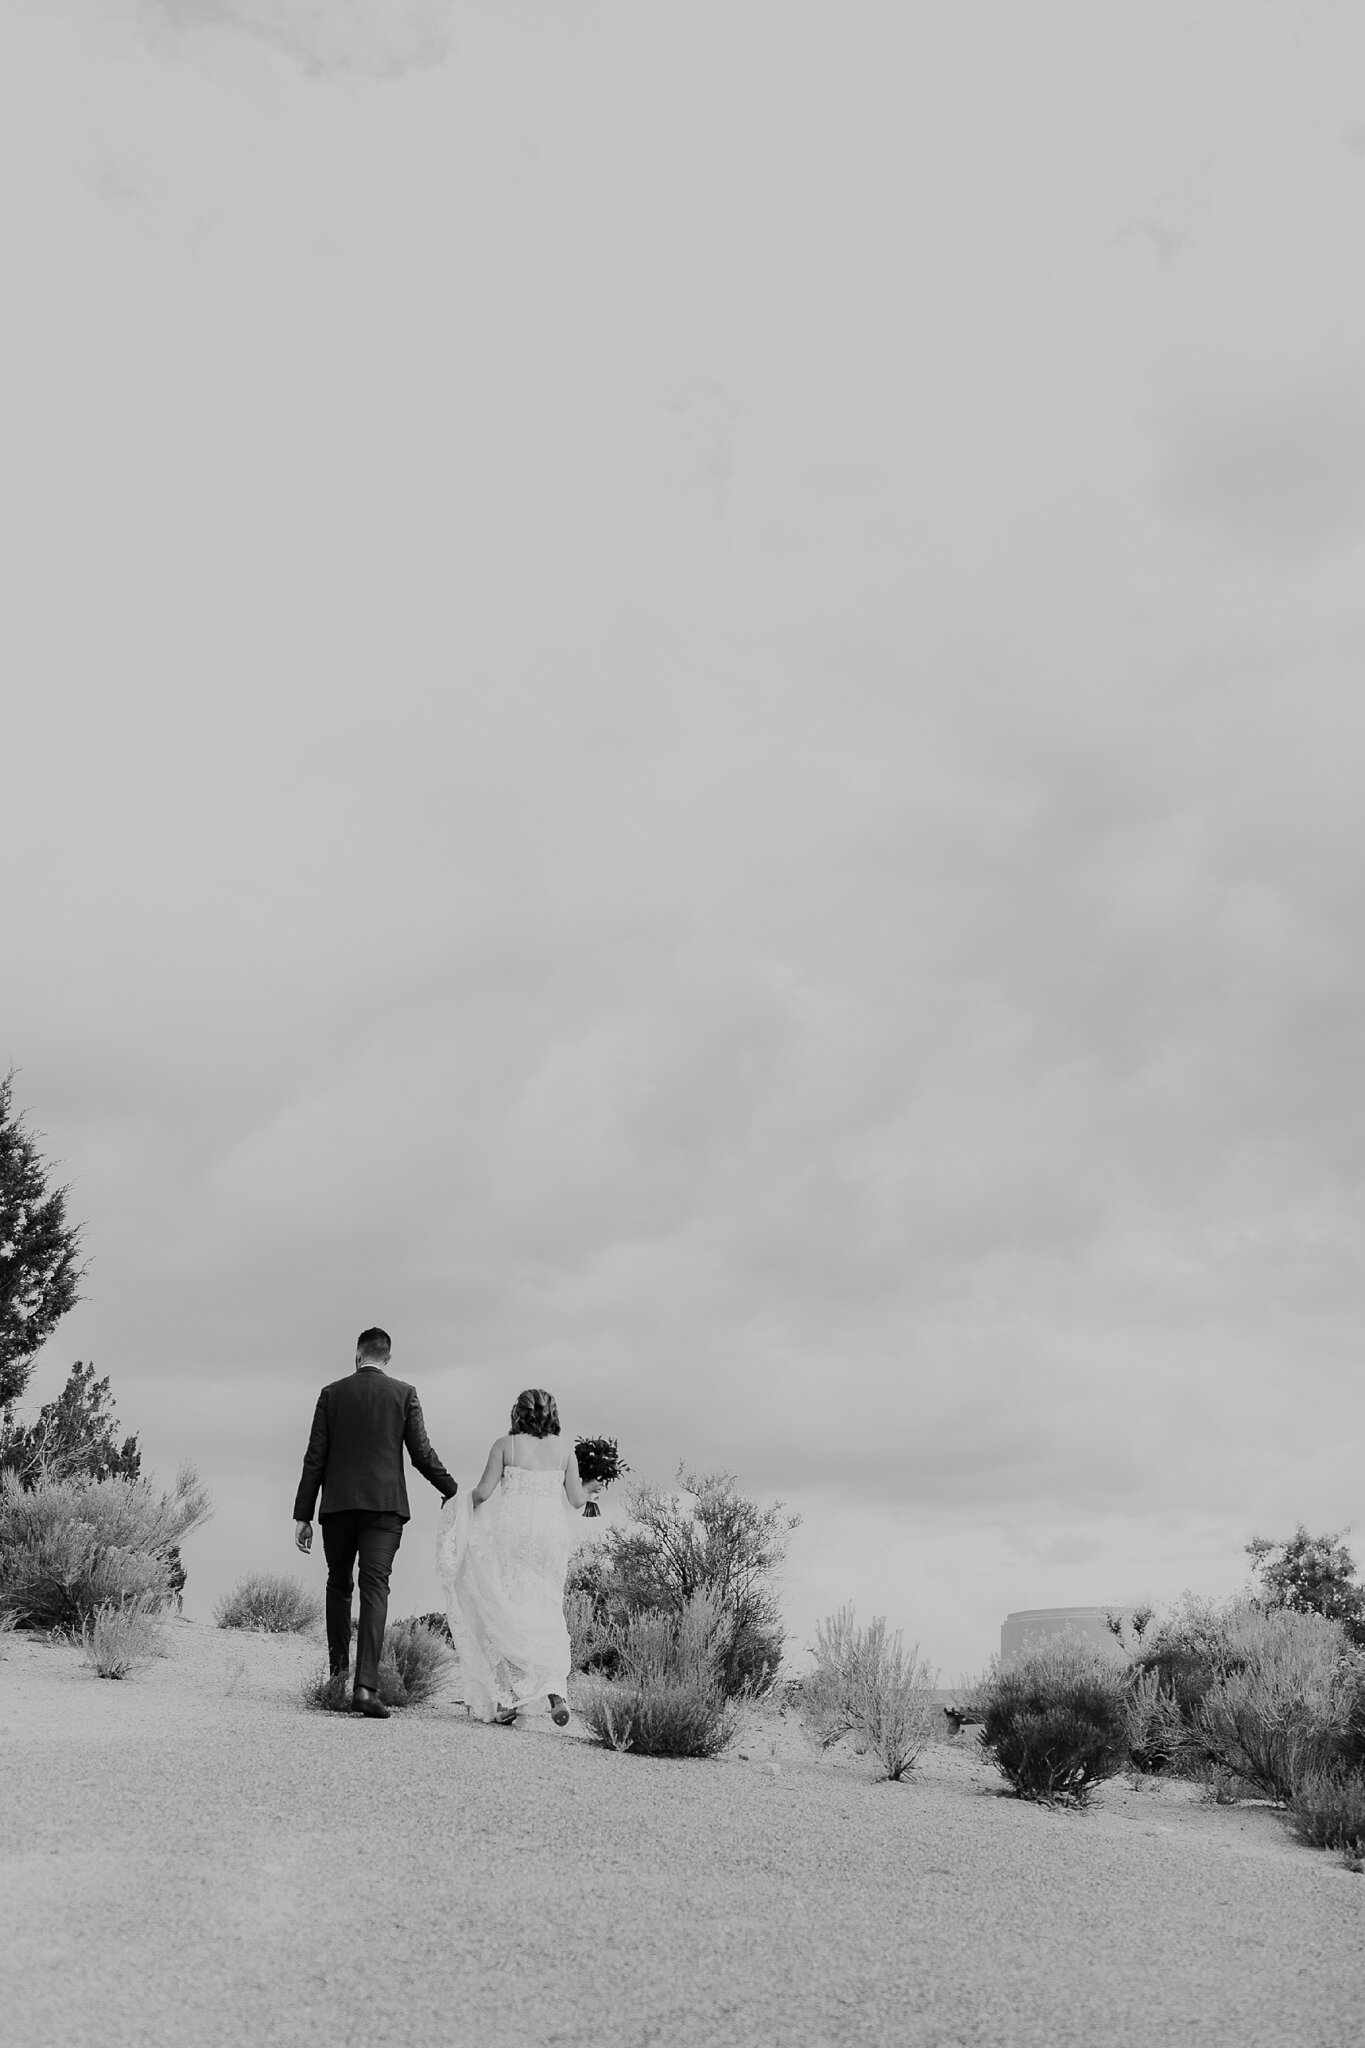 Alicia+lucia+photography+-+albuquerque+wedding+photographer+-+santa+fe+wedding+photography+-+new+mexico+wedding+photographer+-+new+mexico+wedding+-+albuquerque+wedding+-+sandia+wedding+-+sandia+event+center+wedding_0071.jpg